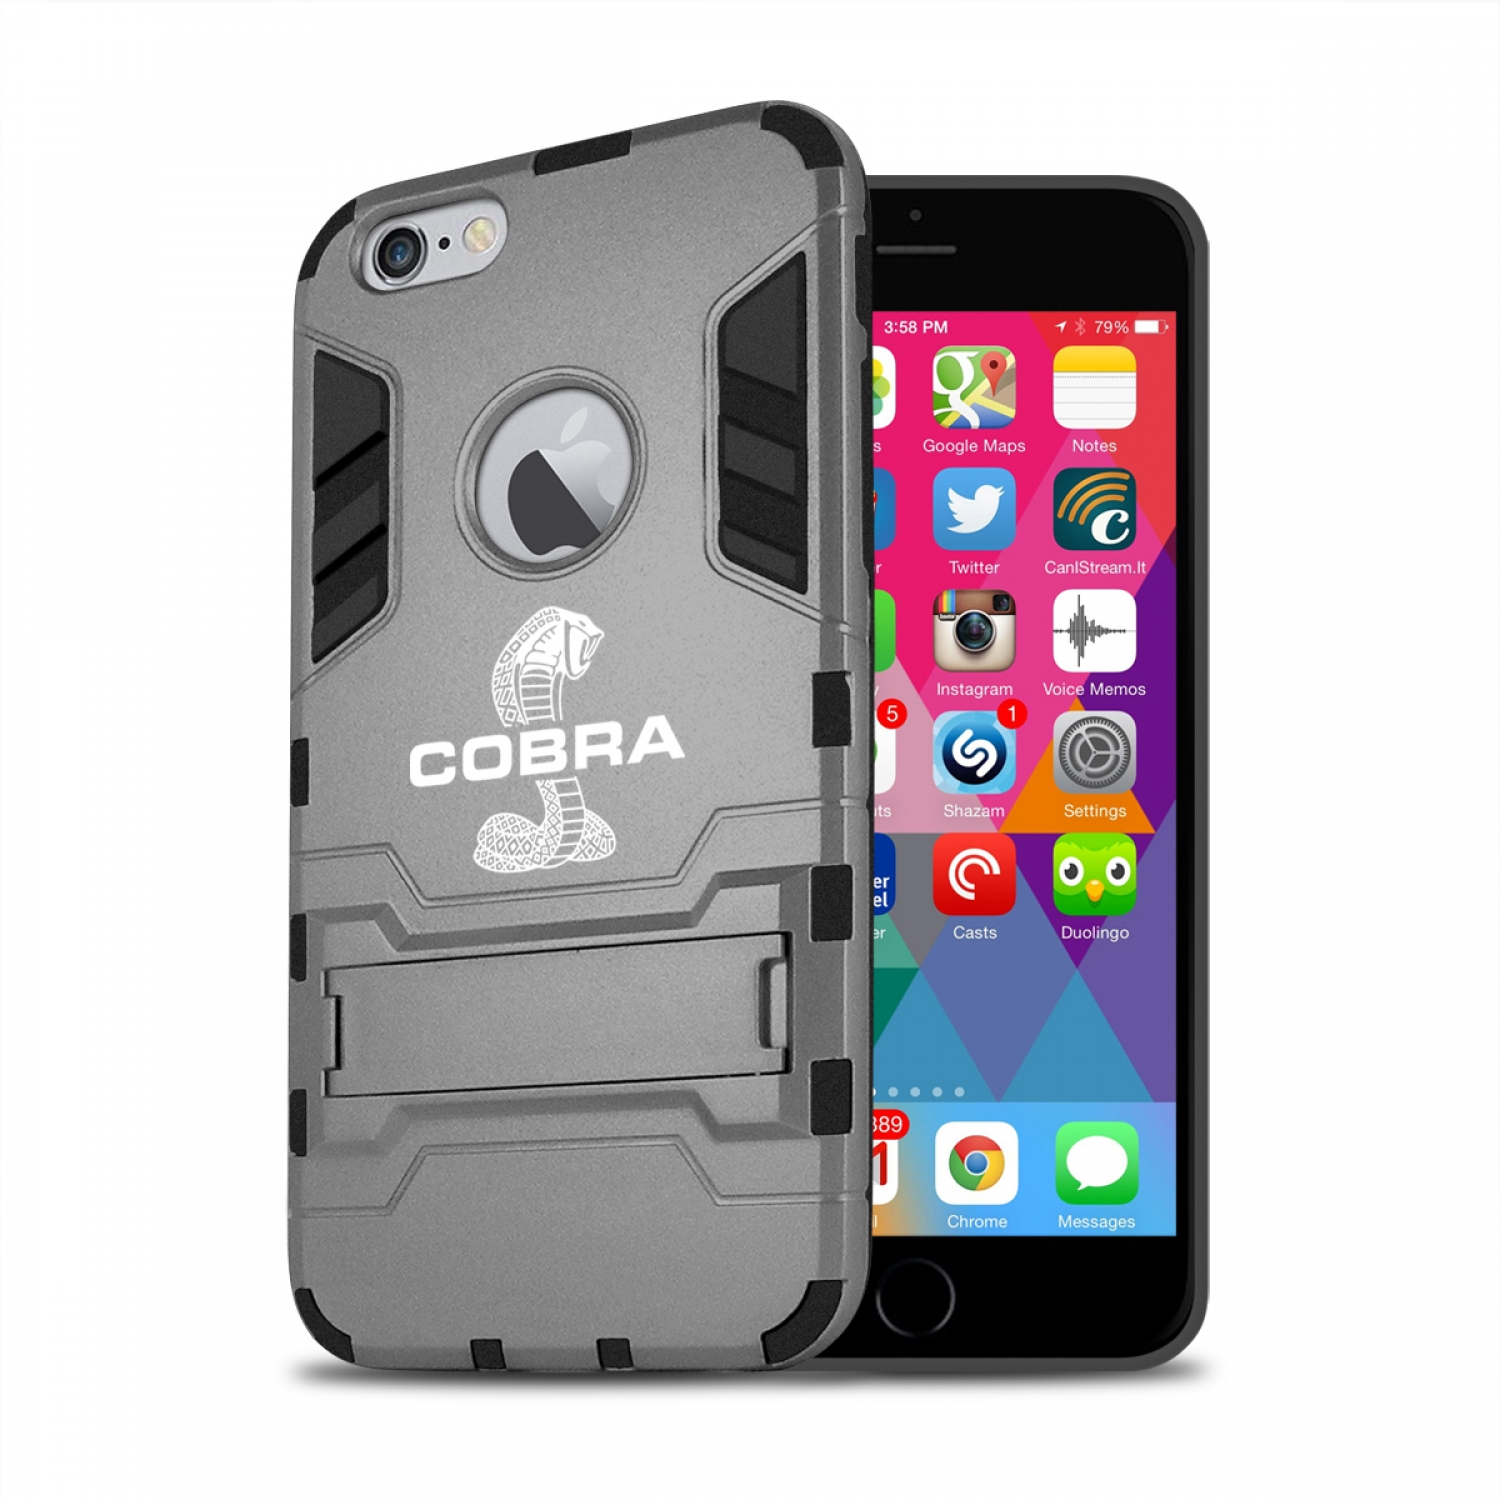 Ford Mustang Cobra iPhone 6 6s Shockproof TPU ABS Hybrid Dark Gray Phone Case